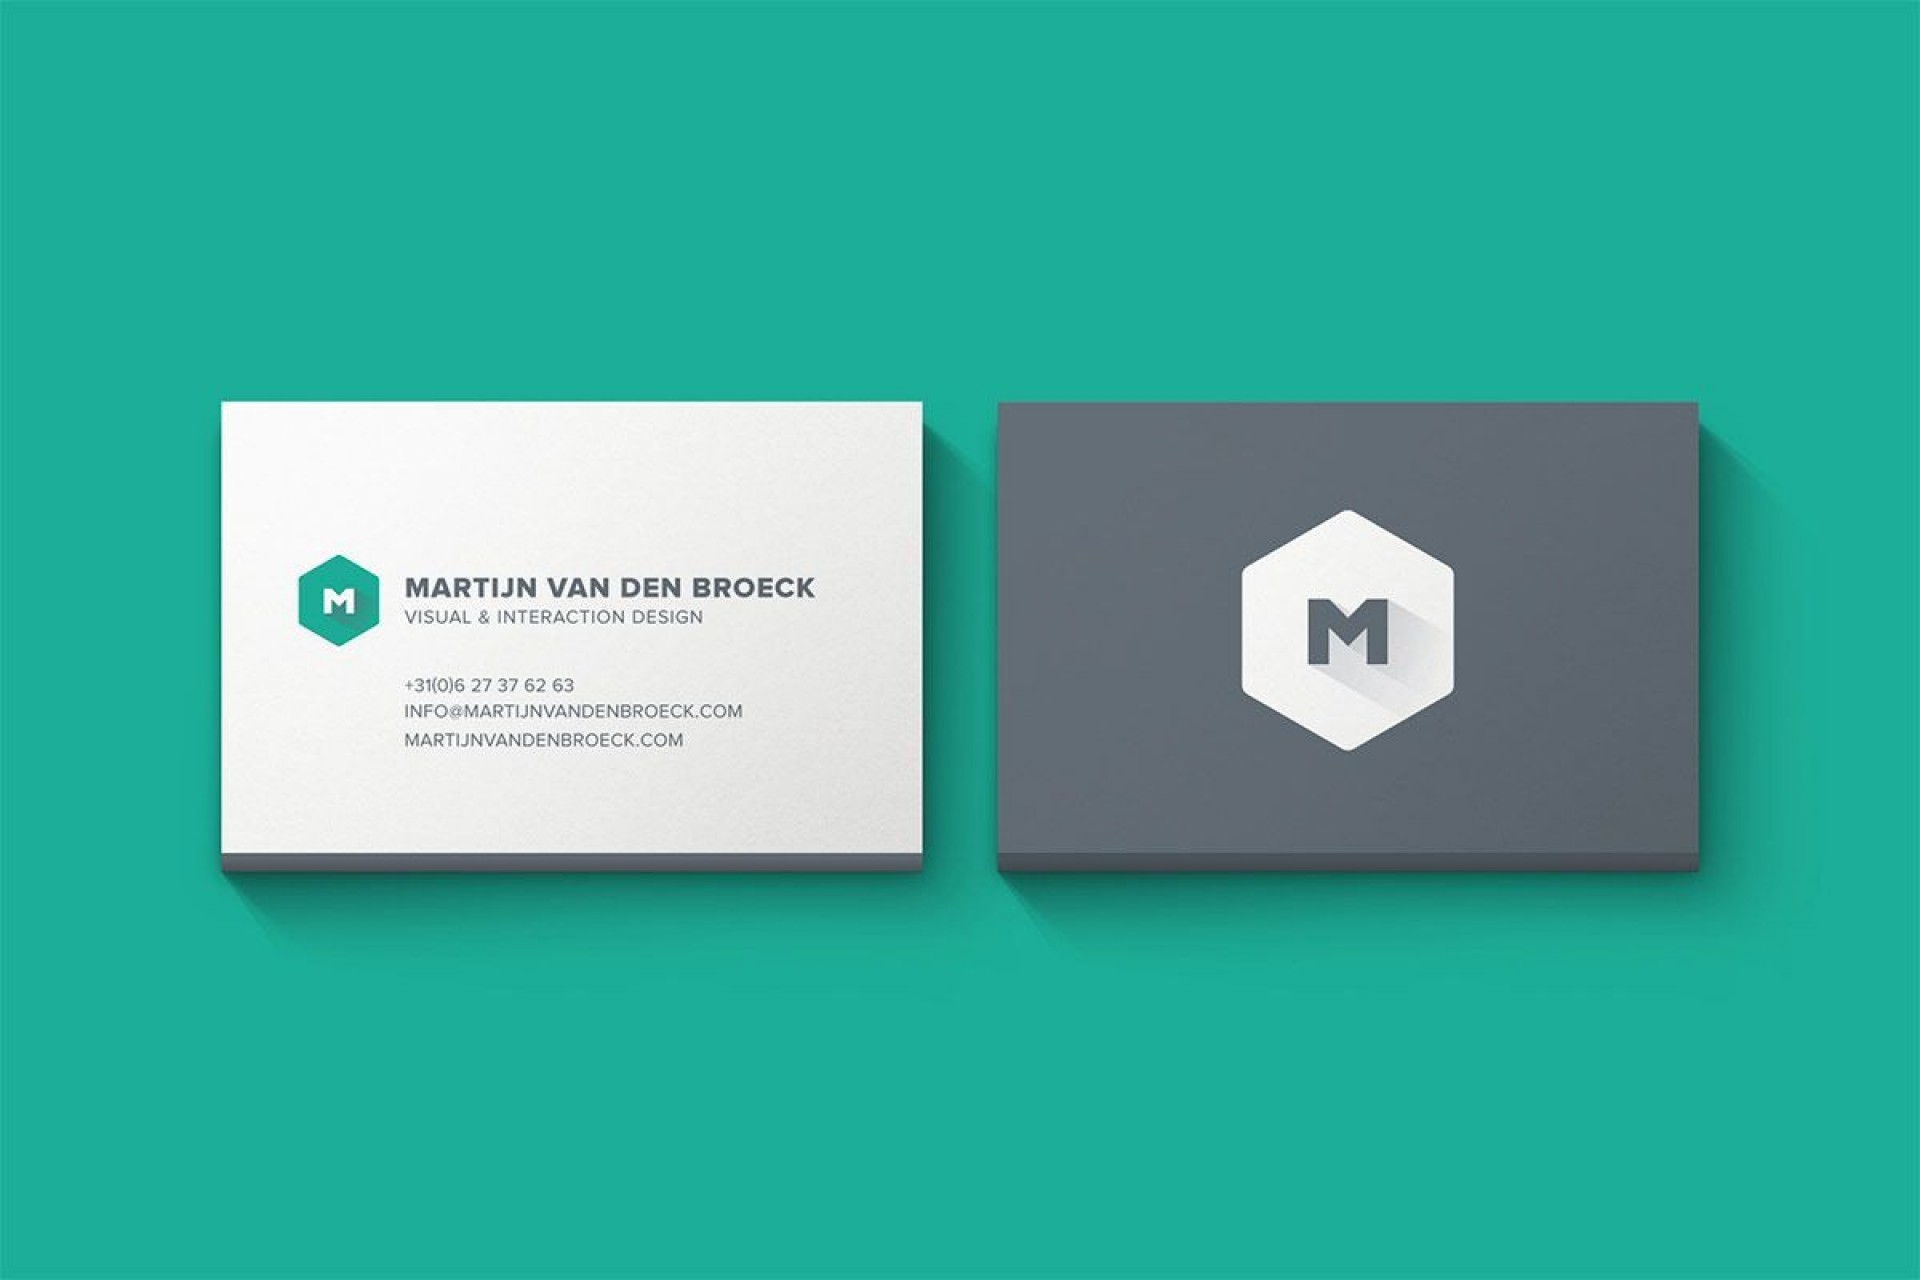 004 Stirring Minimalist Busines Card Template Free Download Highest Clarity 1920